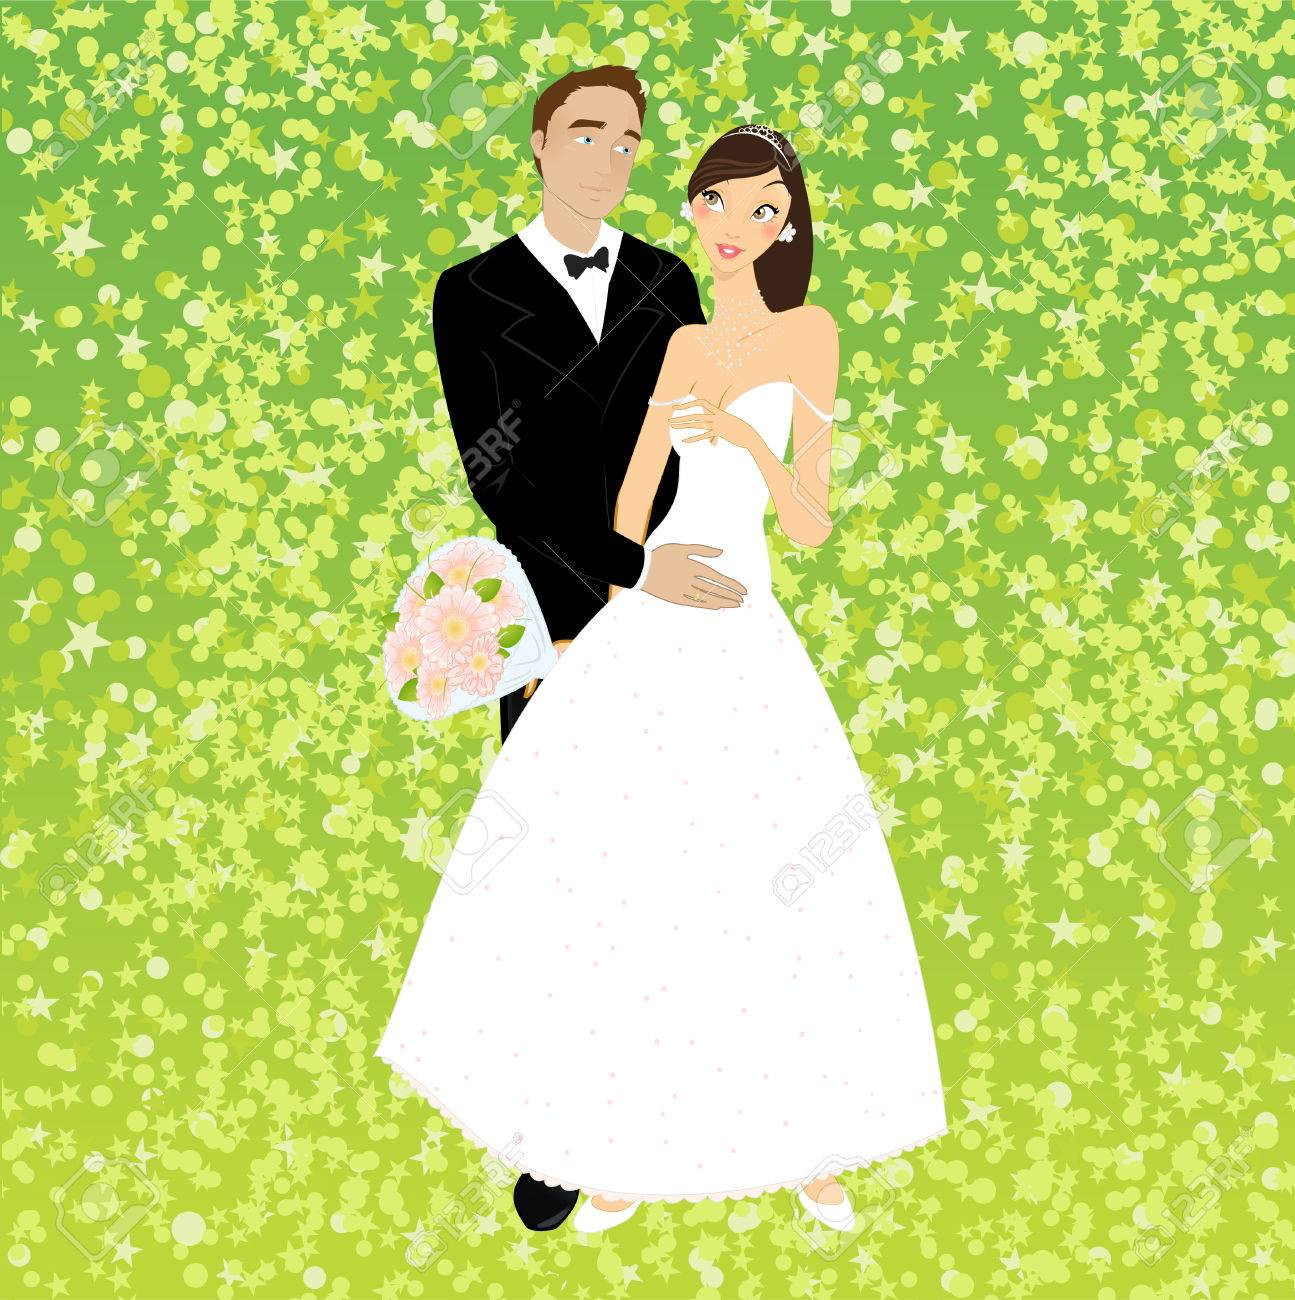 illustration of funky invitation with cool young couple - 7866843